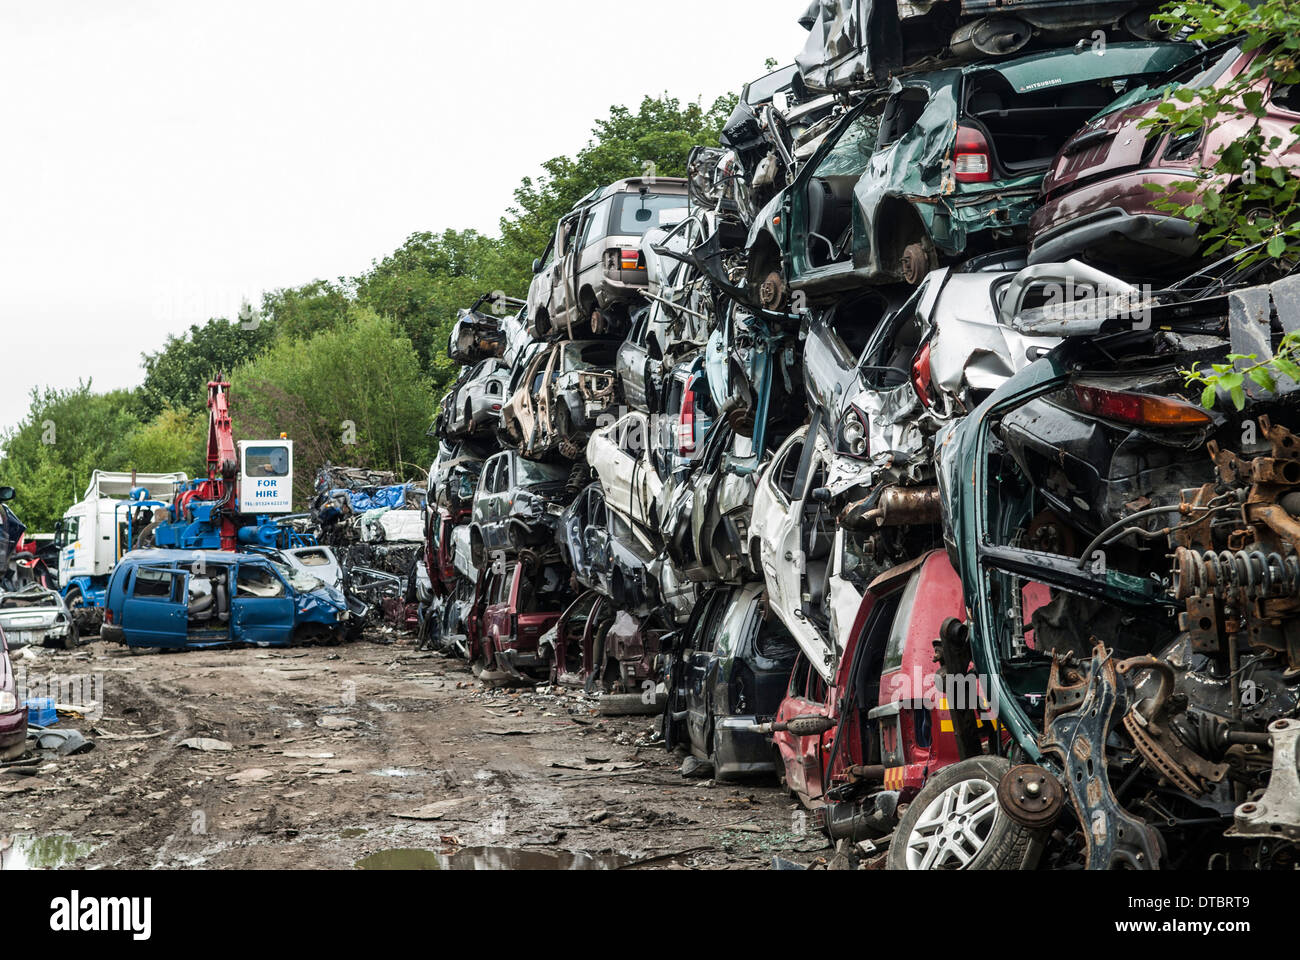 crushed cars in scrap yard uk stock photo 66643033 alamy. Black Bedroom Furniture Sets. Home Design Ideas